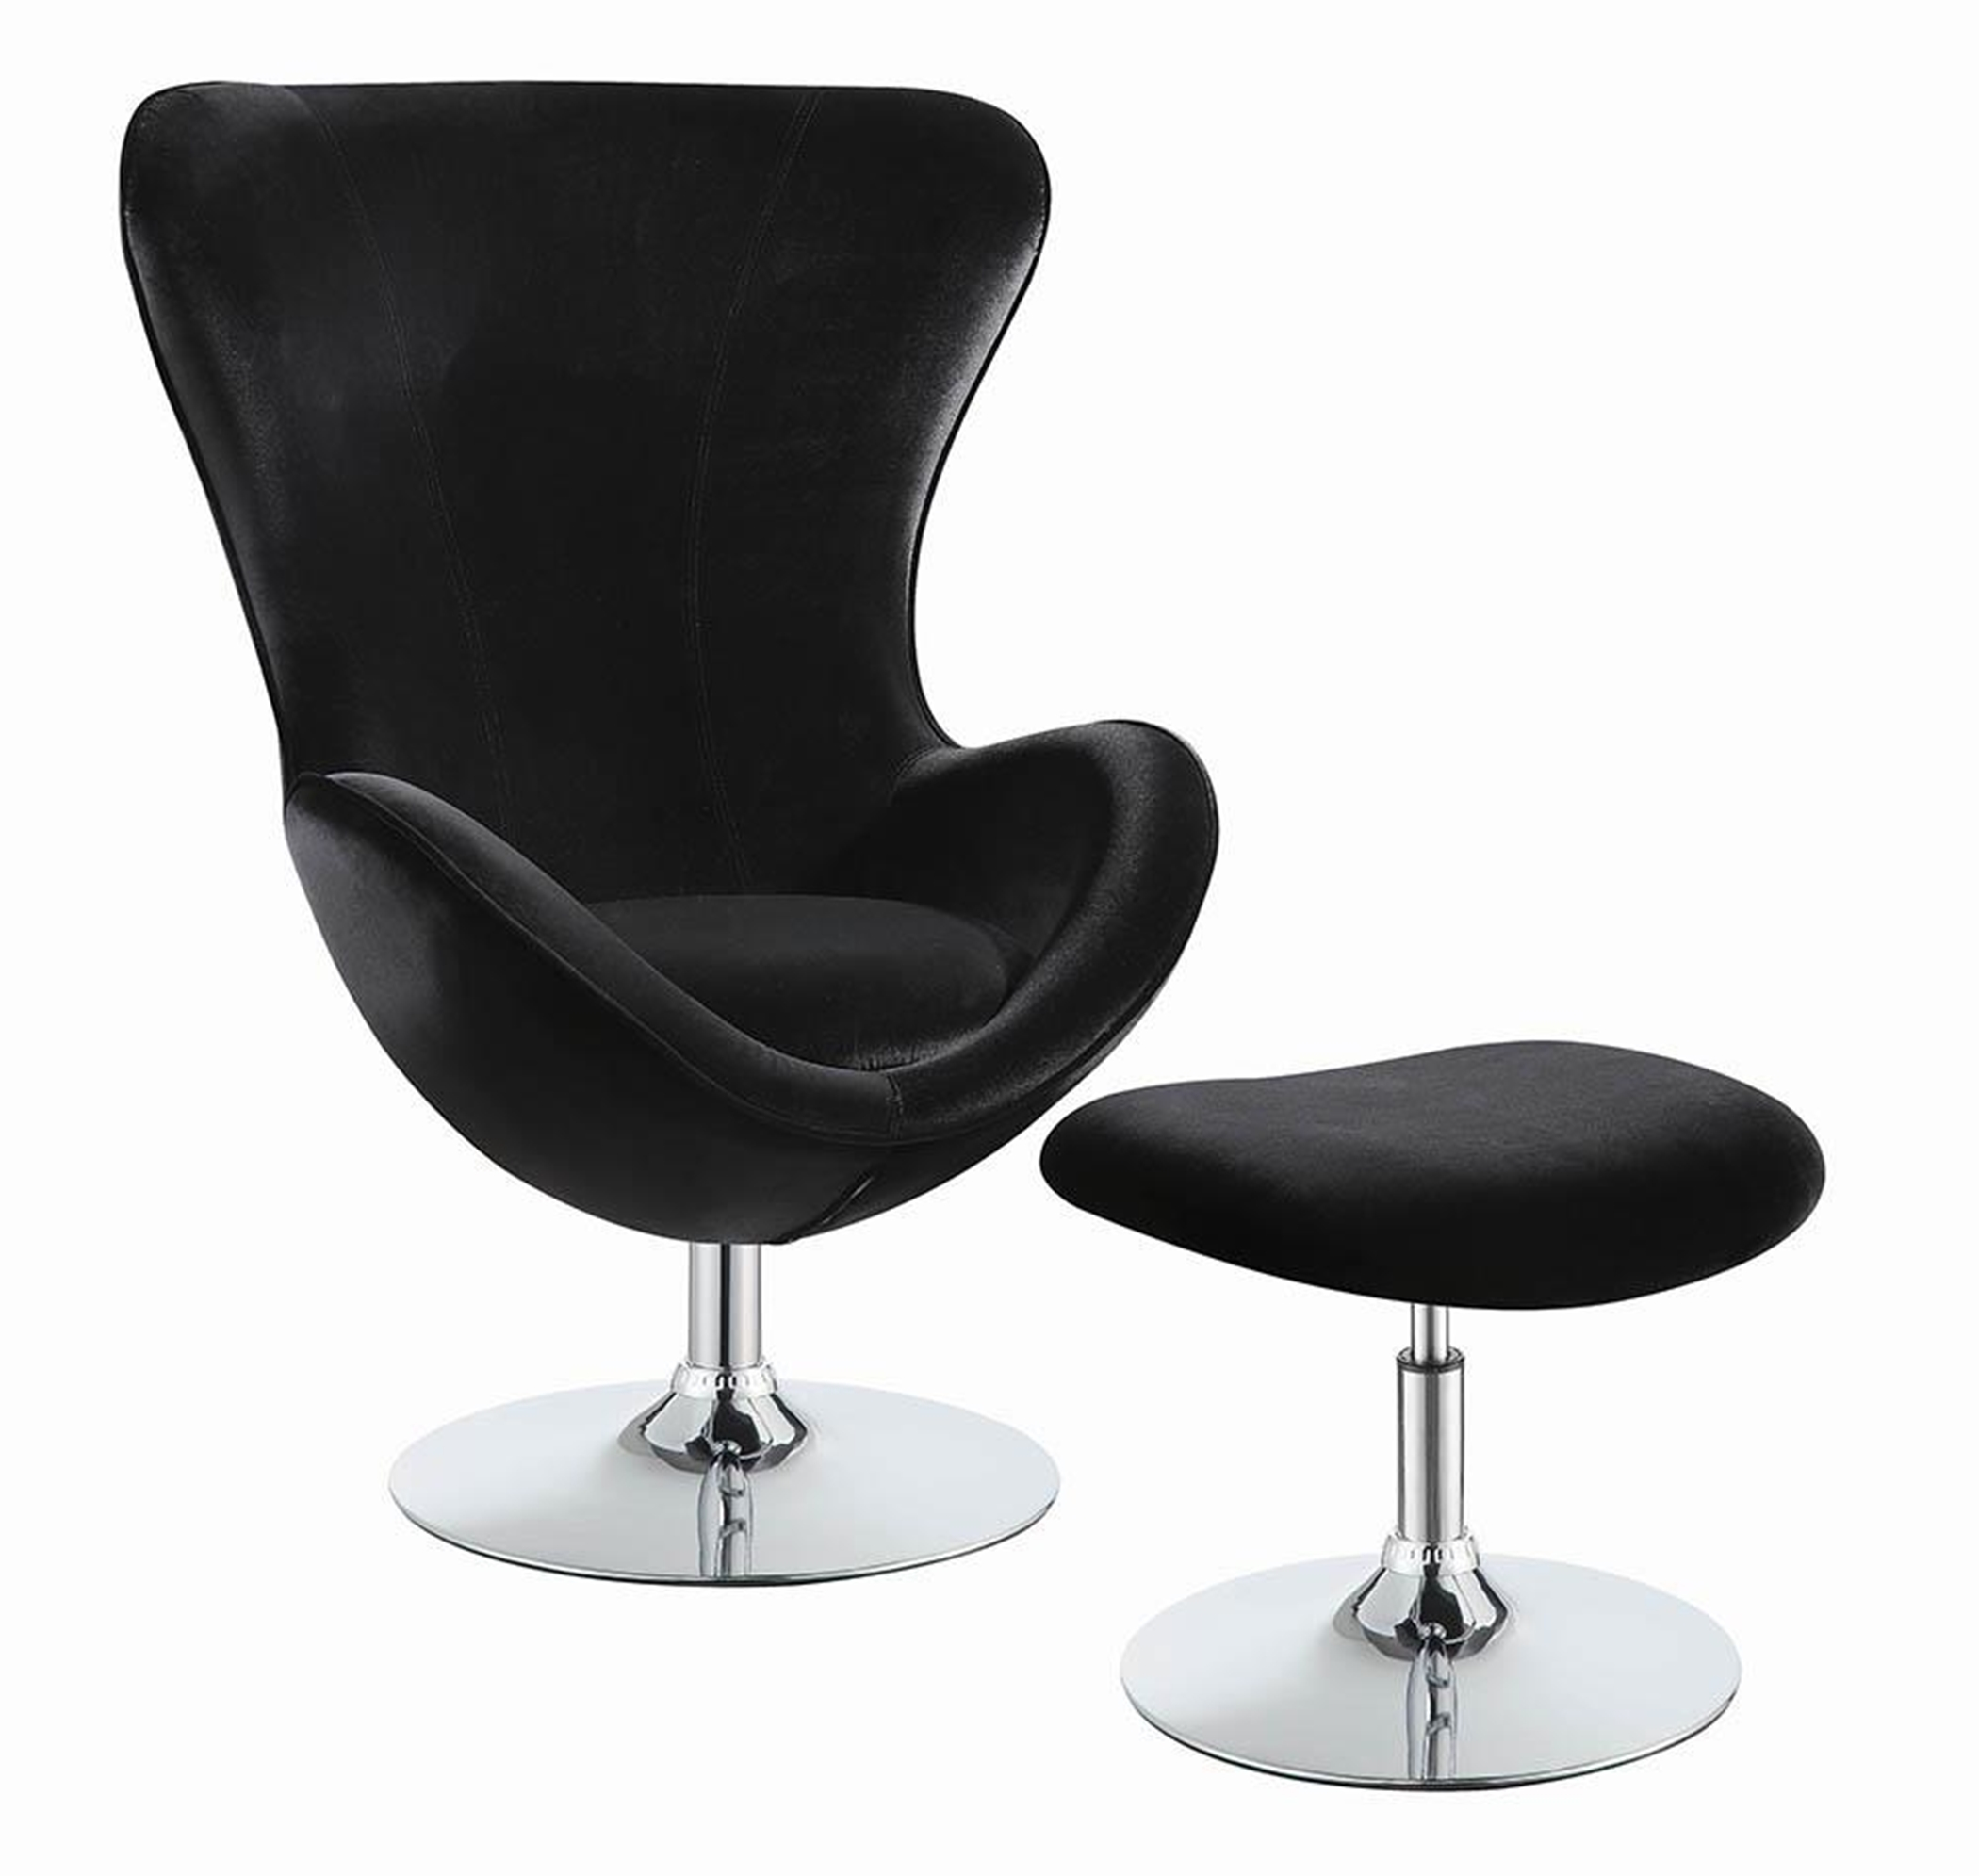 Black and Chrome Chair and Ottoman